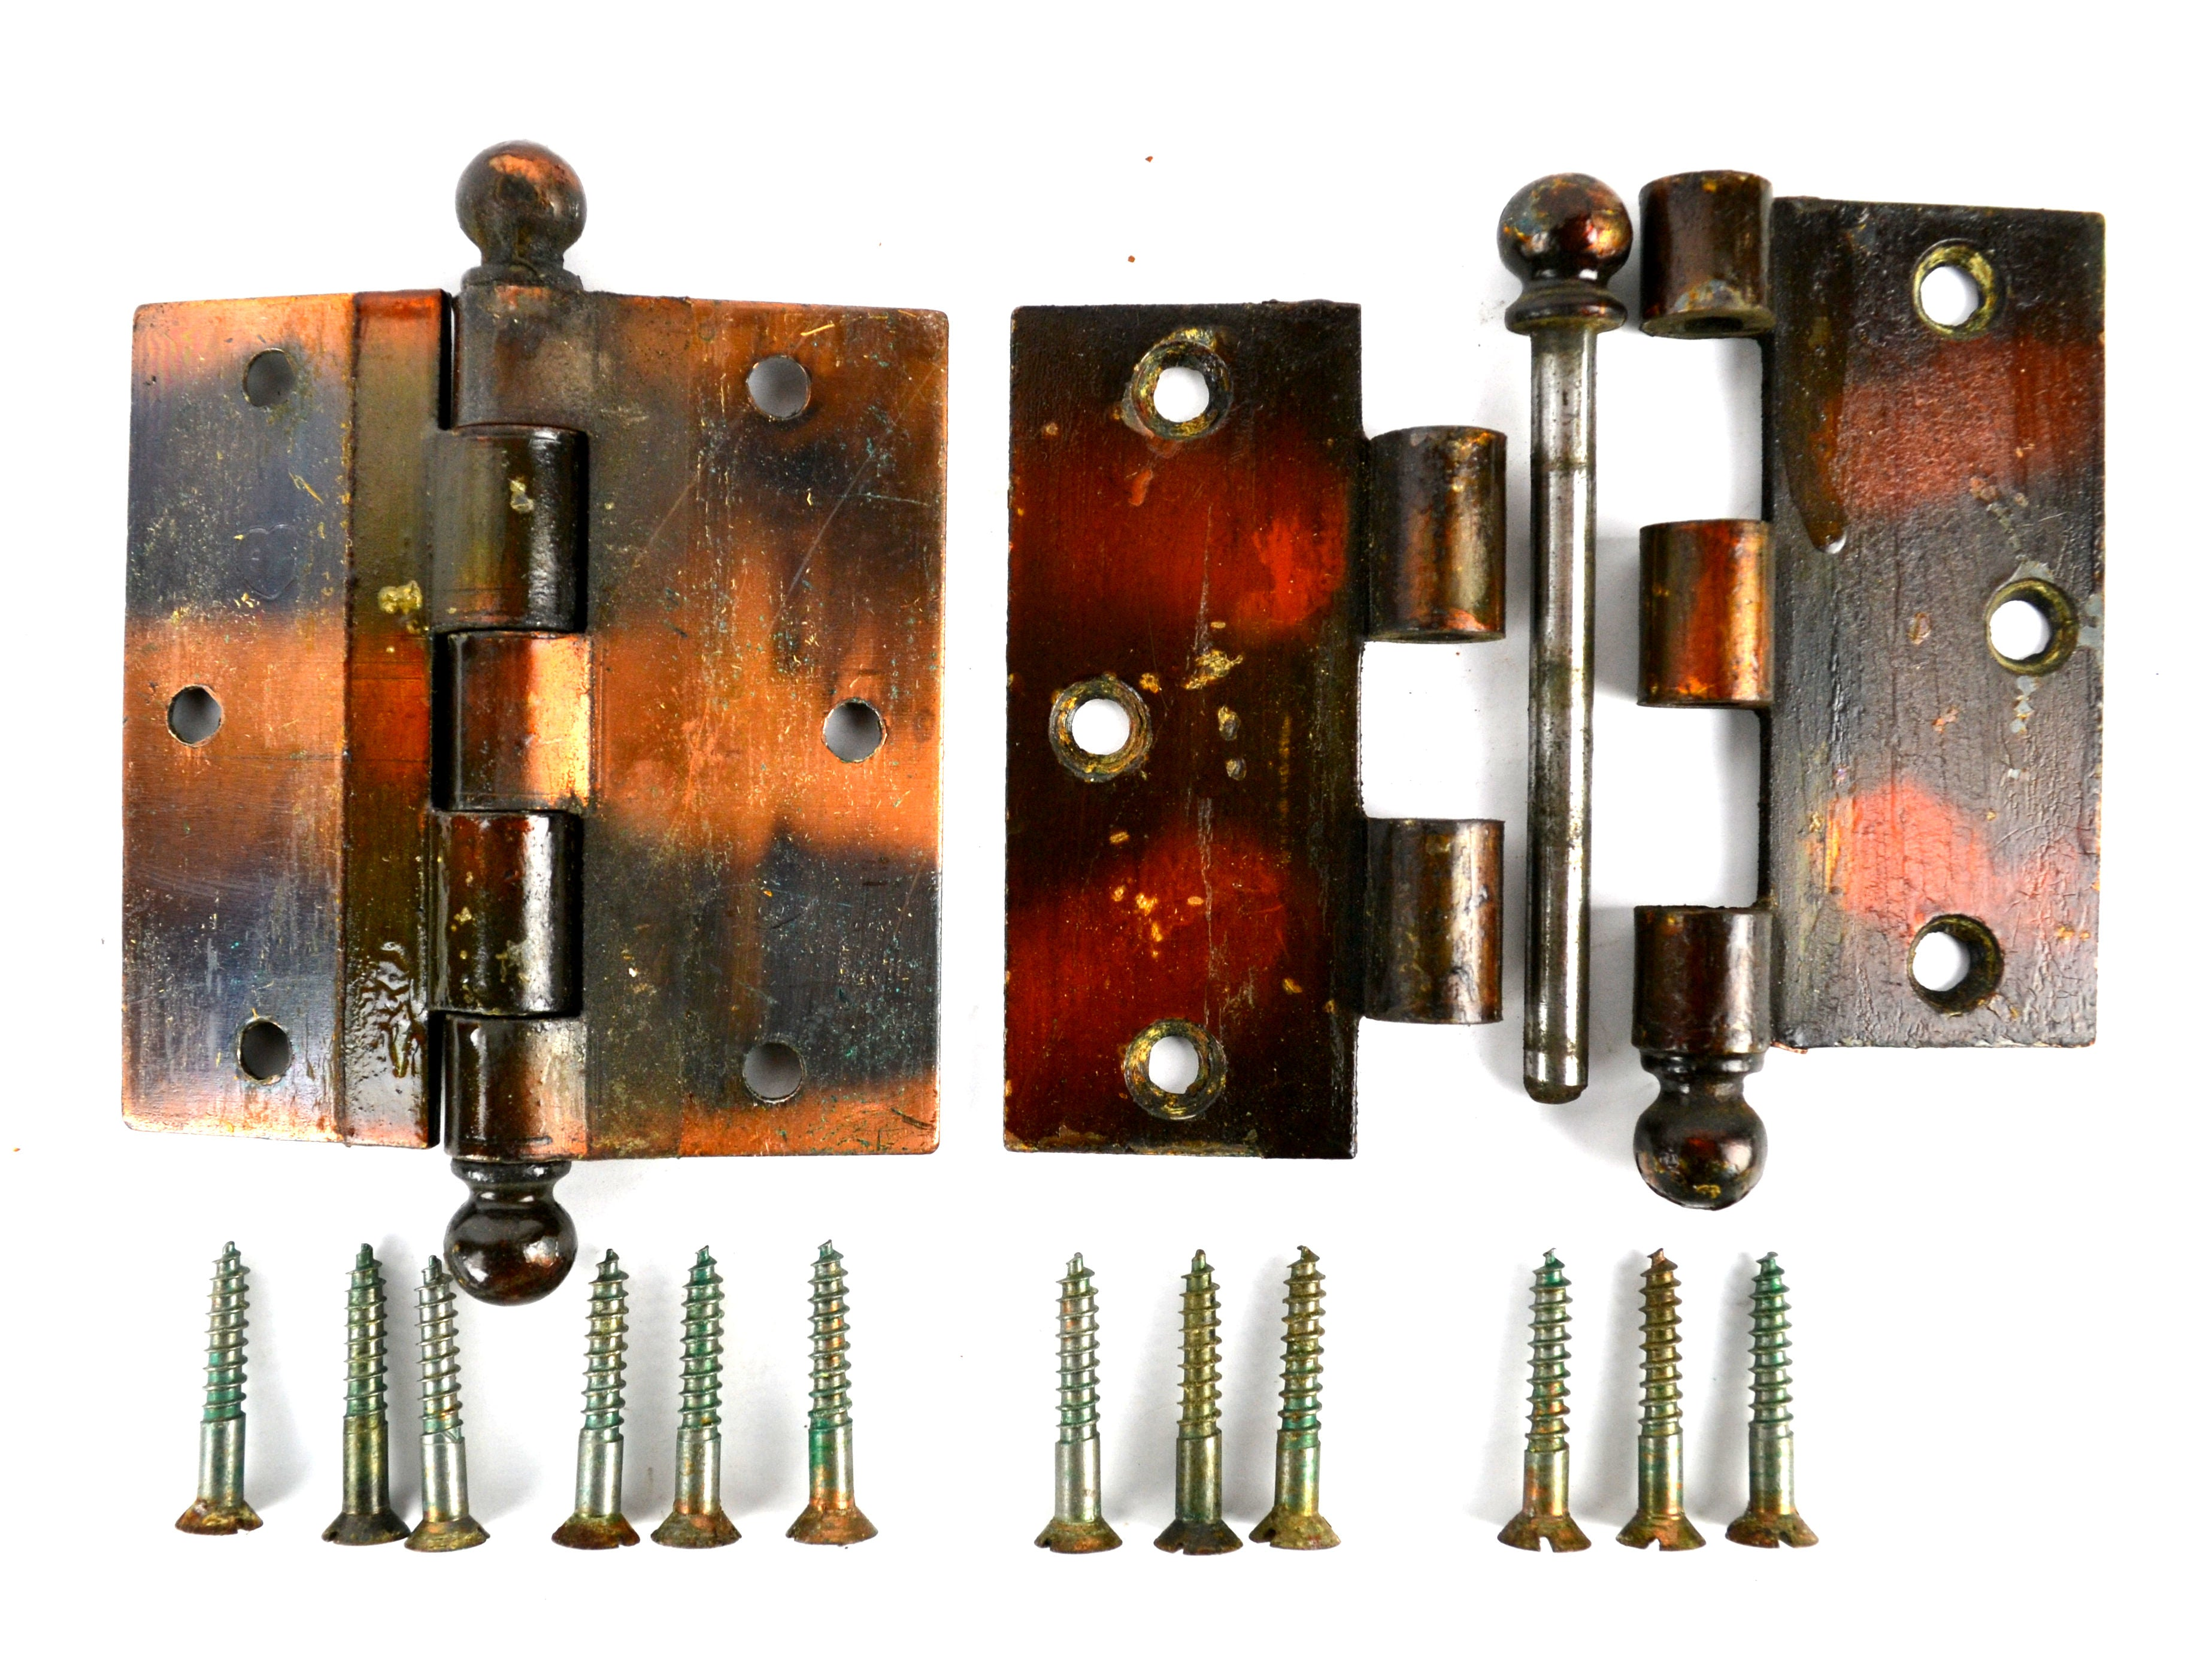 Merveilleux ... Antique Door Hinges 3 1/2 Inch Japanned Copper Flash Cannonball Stanley  Sweetheart Set Of